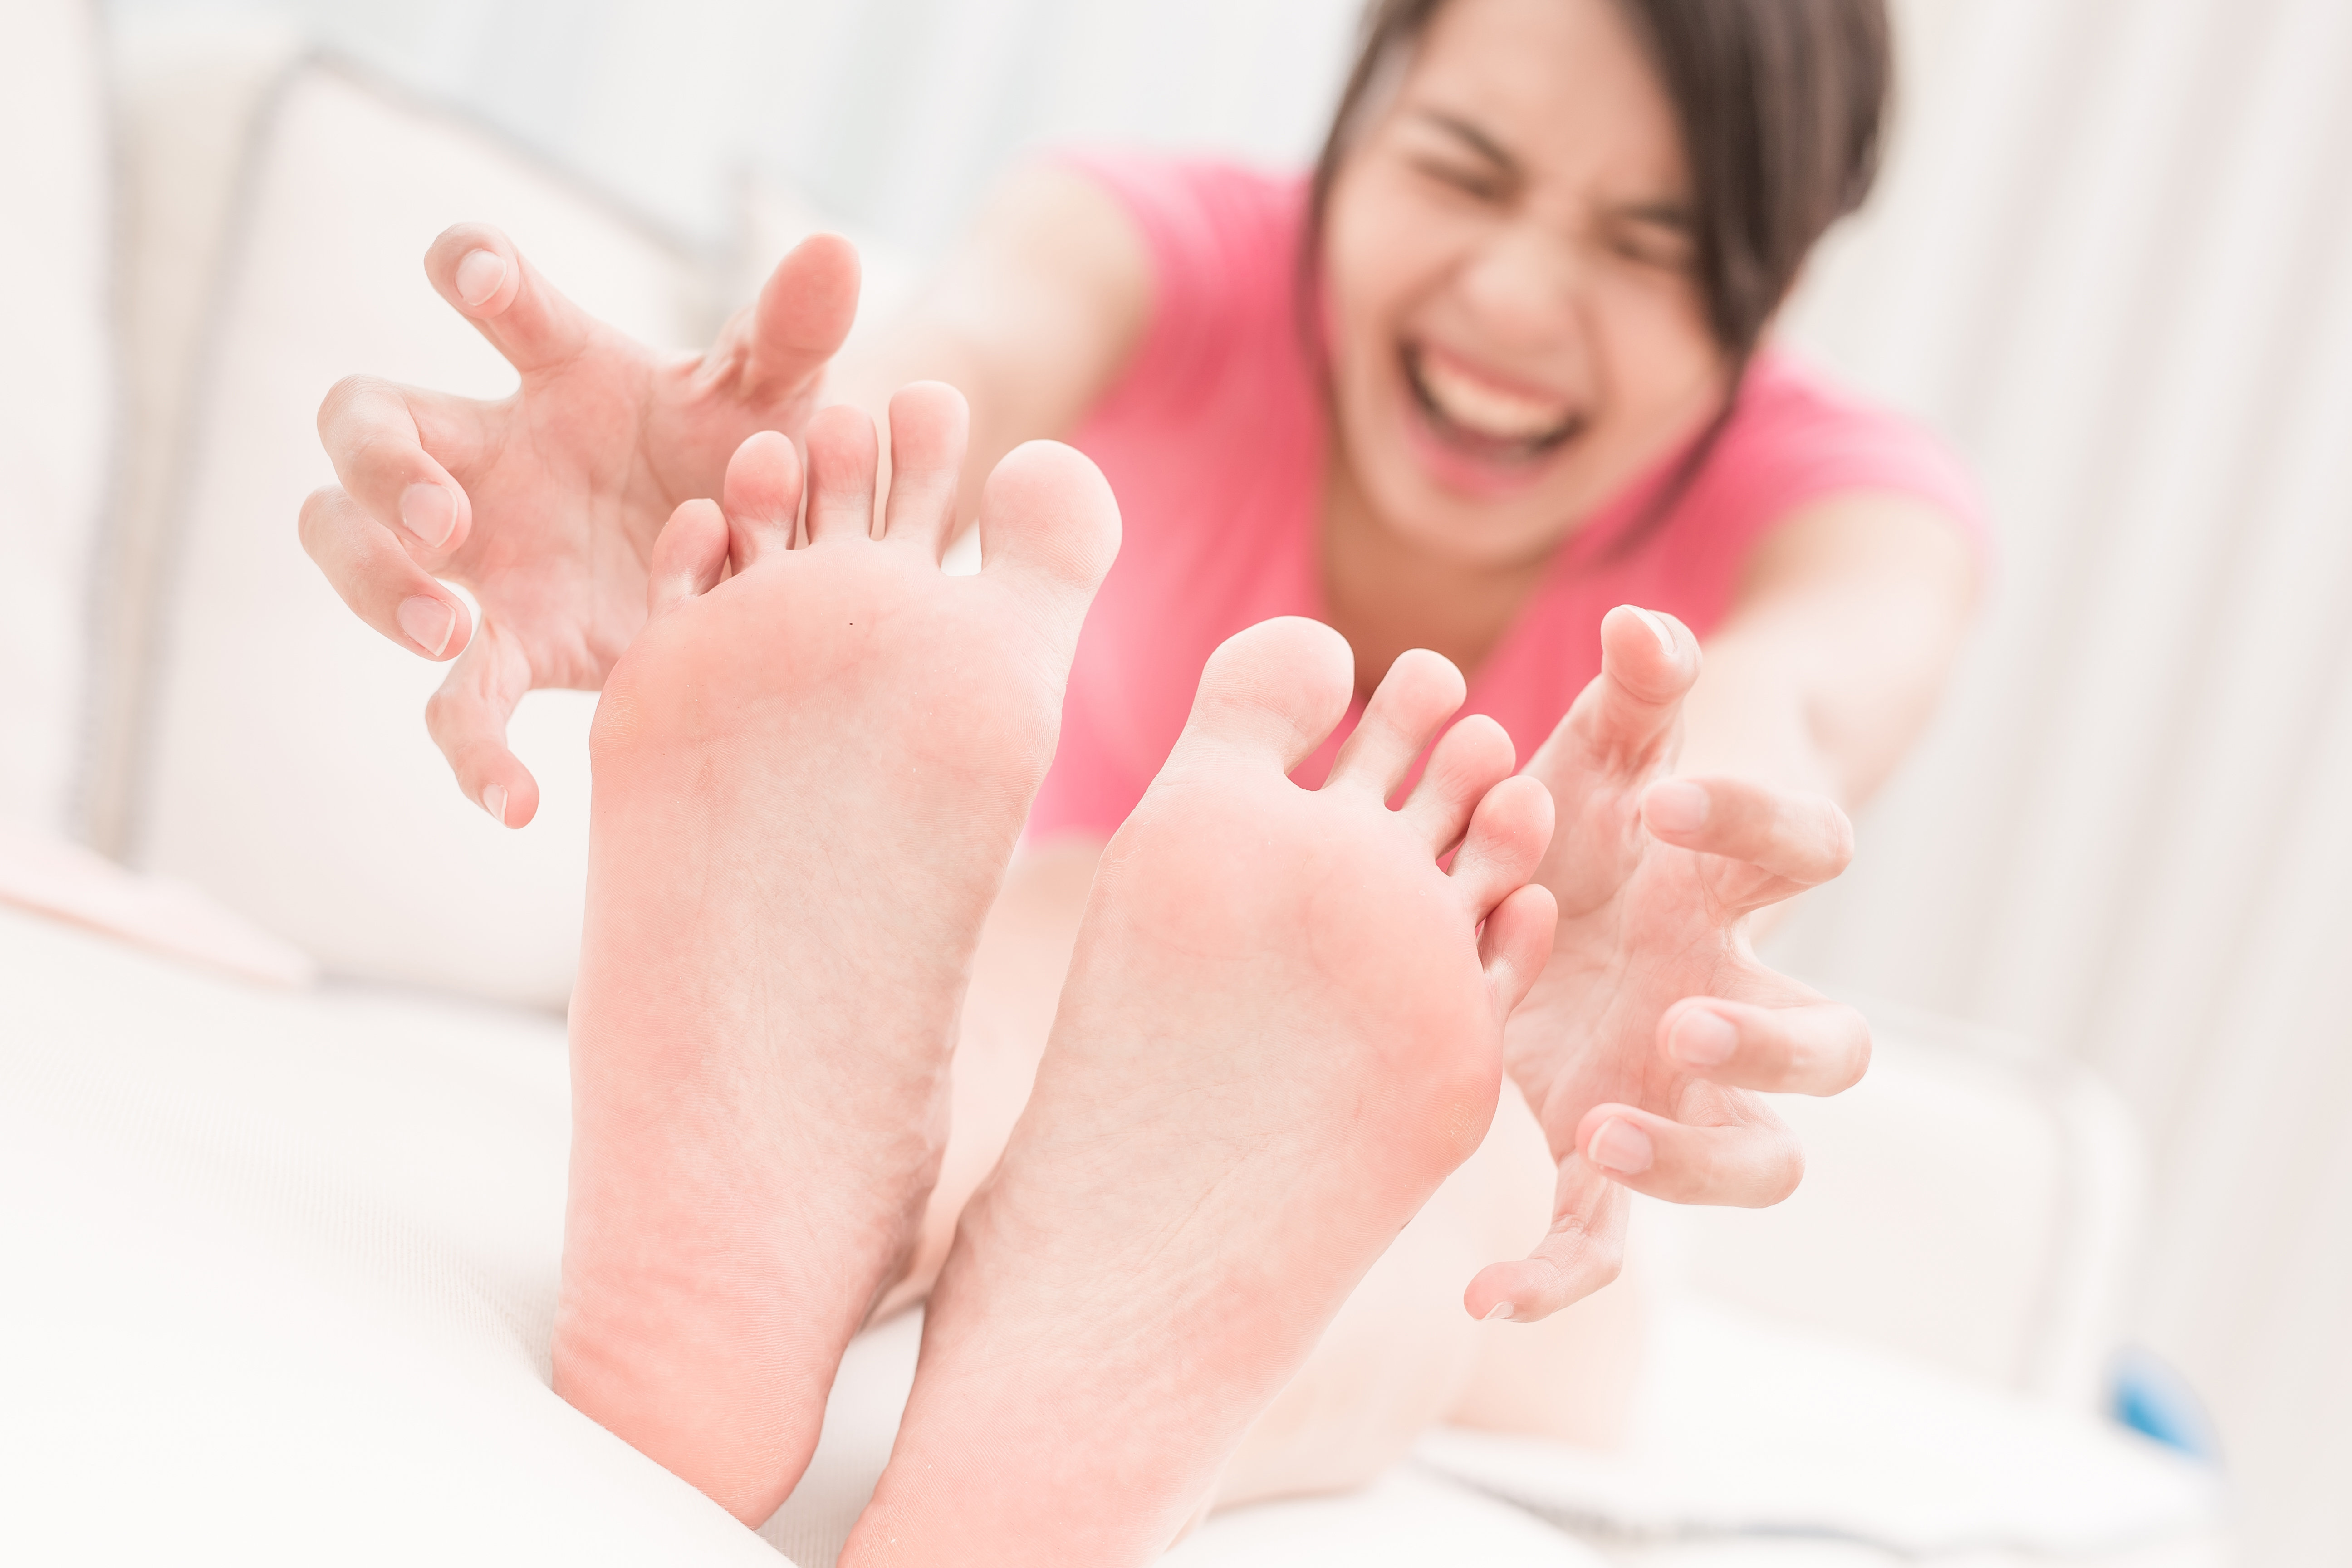 Woman in room with painful feet